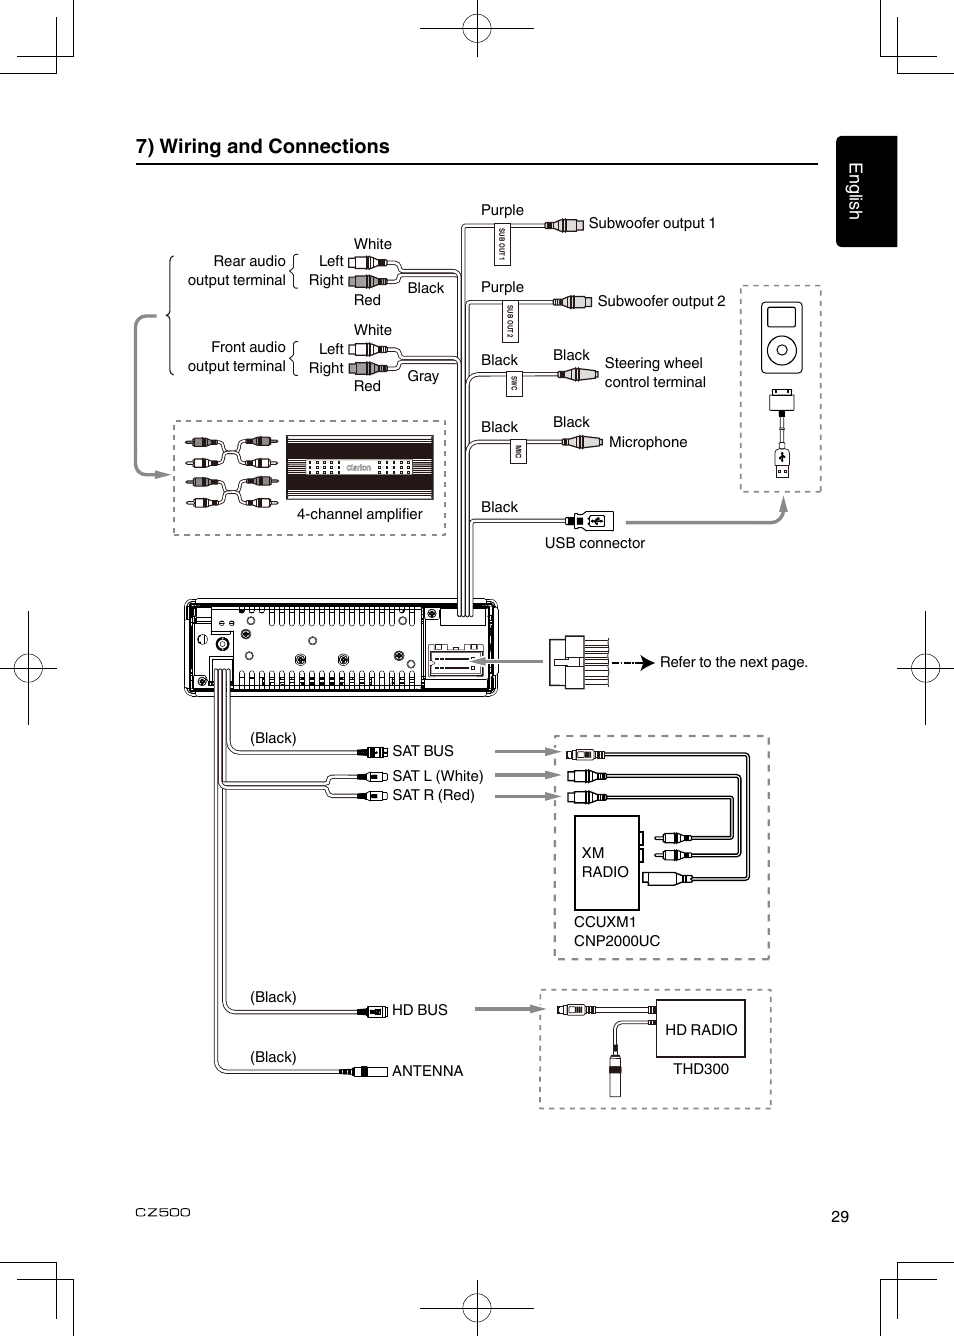 7) wiring and connections | Clarion CZ500 User Manual | Page 29 / 31Manuals Directory